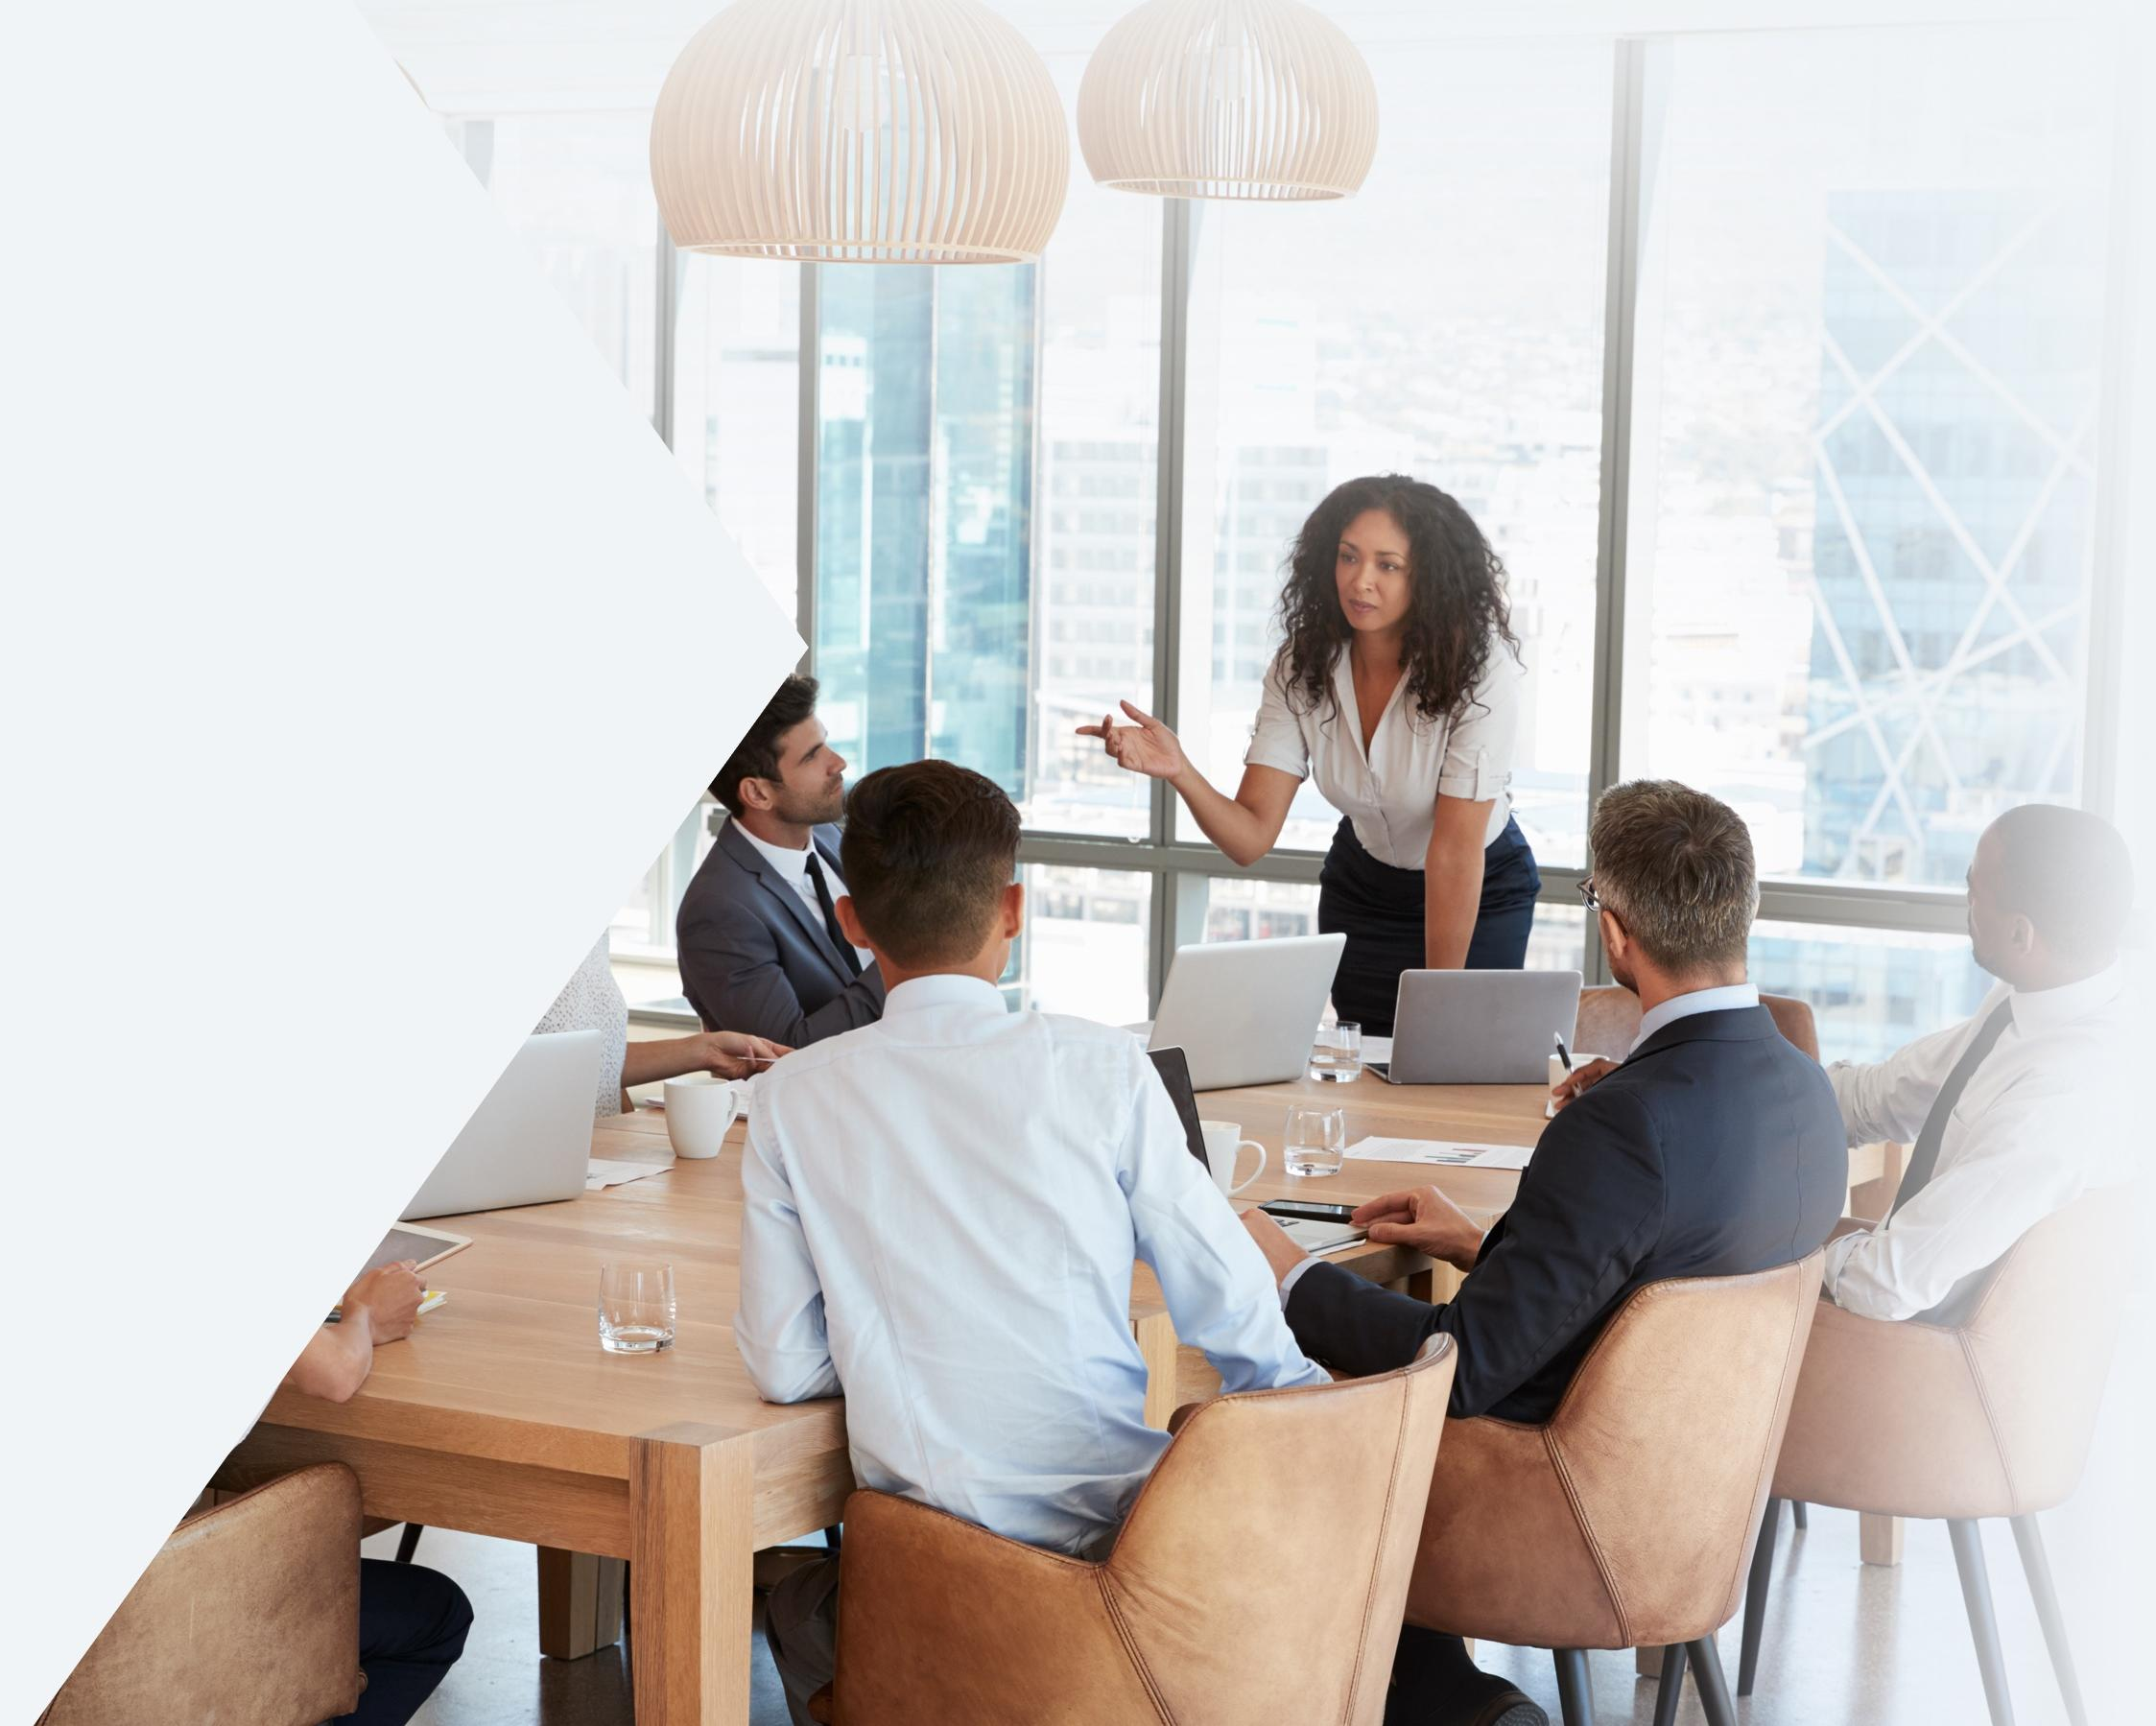 Business woman standing at a table and speaker to colleagues